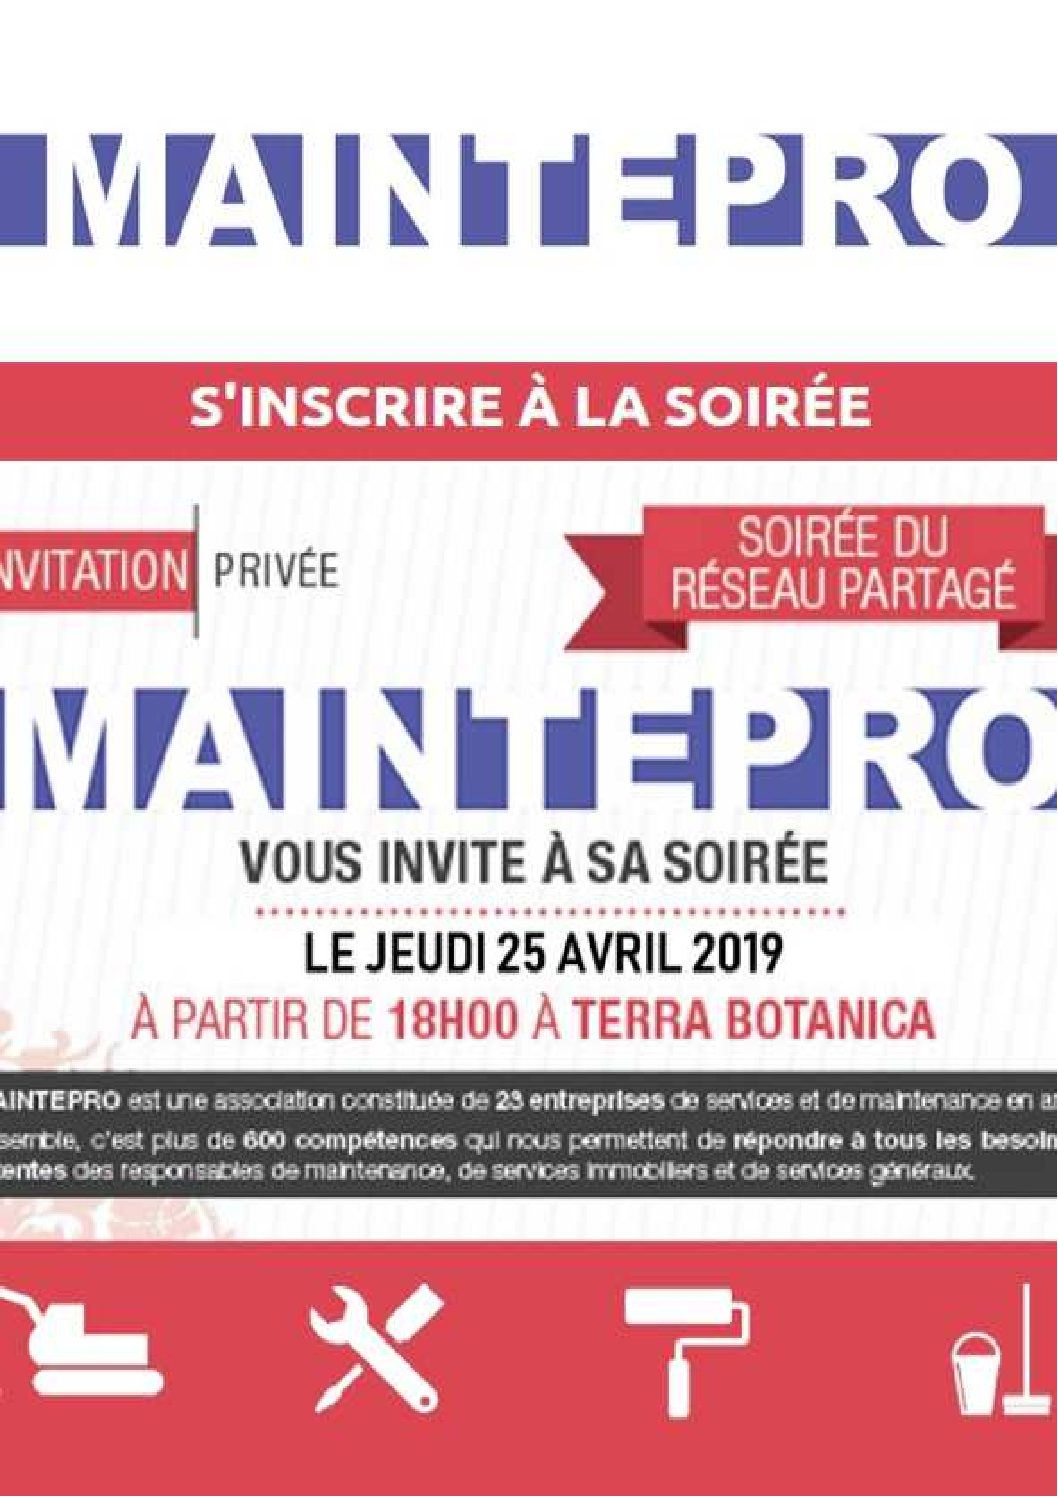 Salon MAINTEPRO 2019